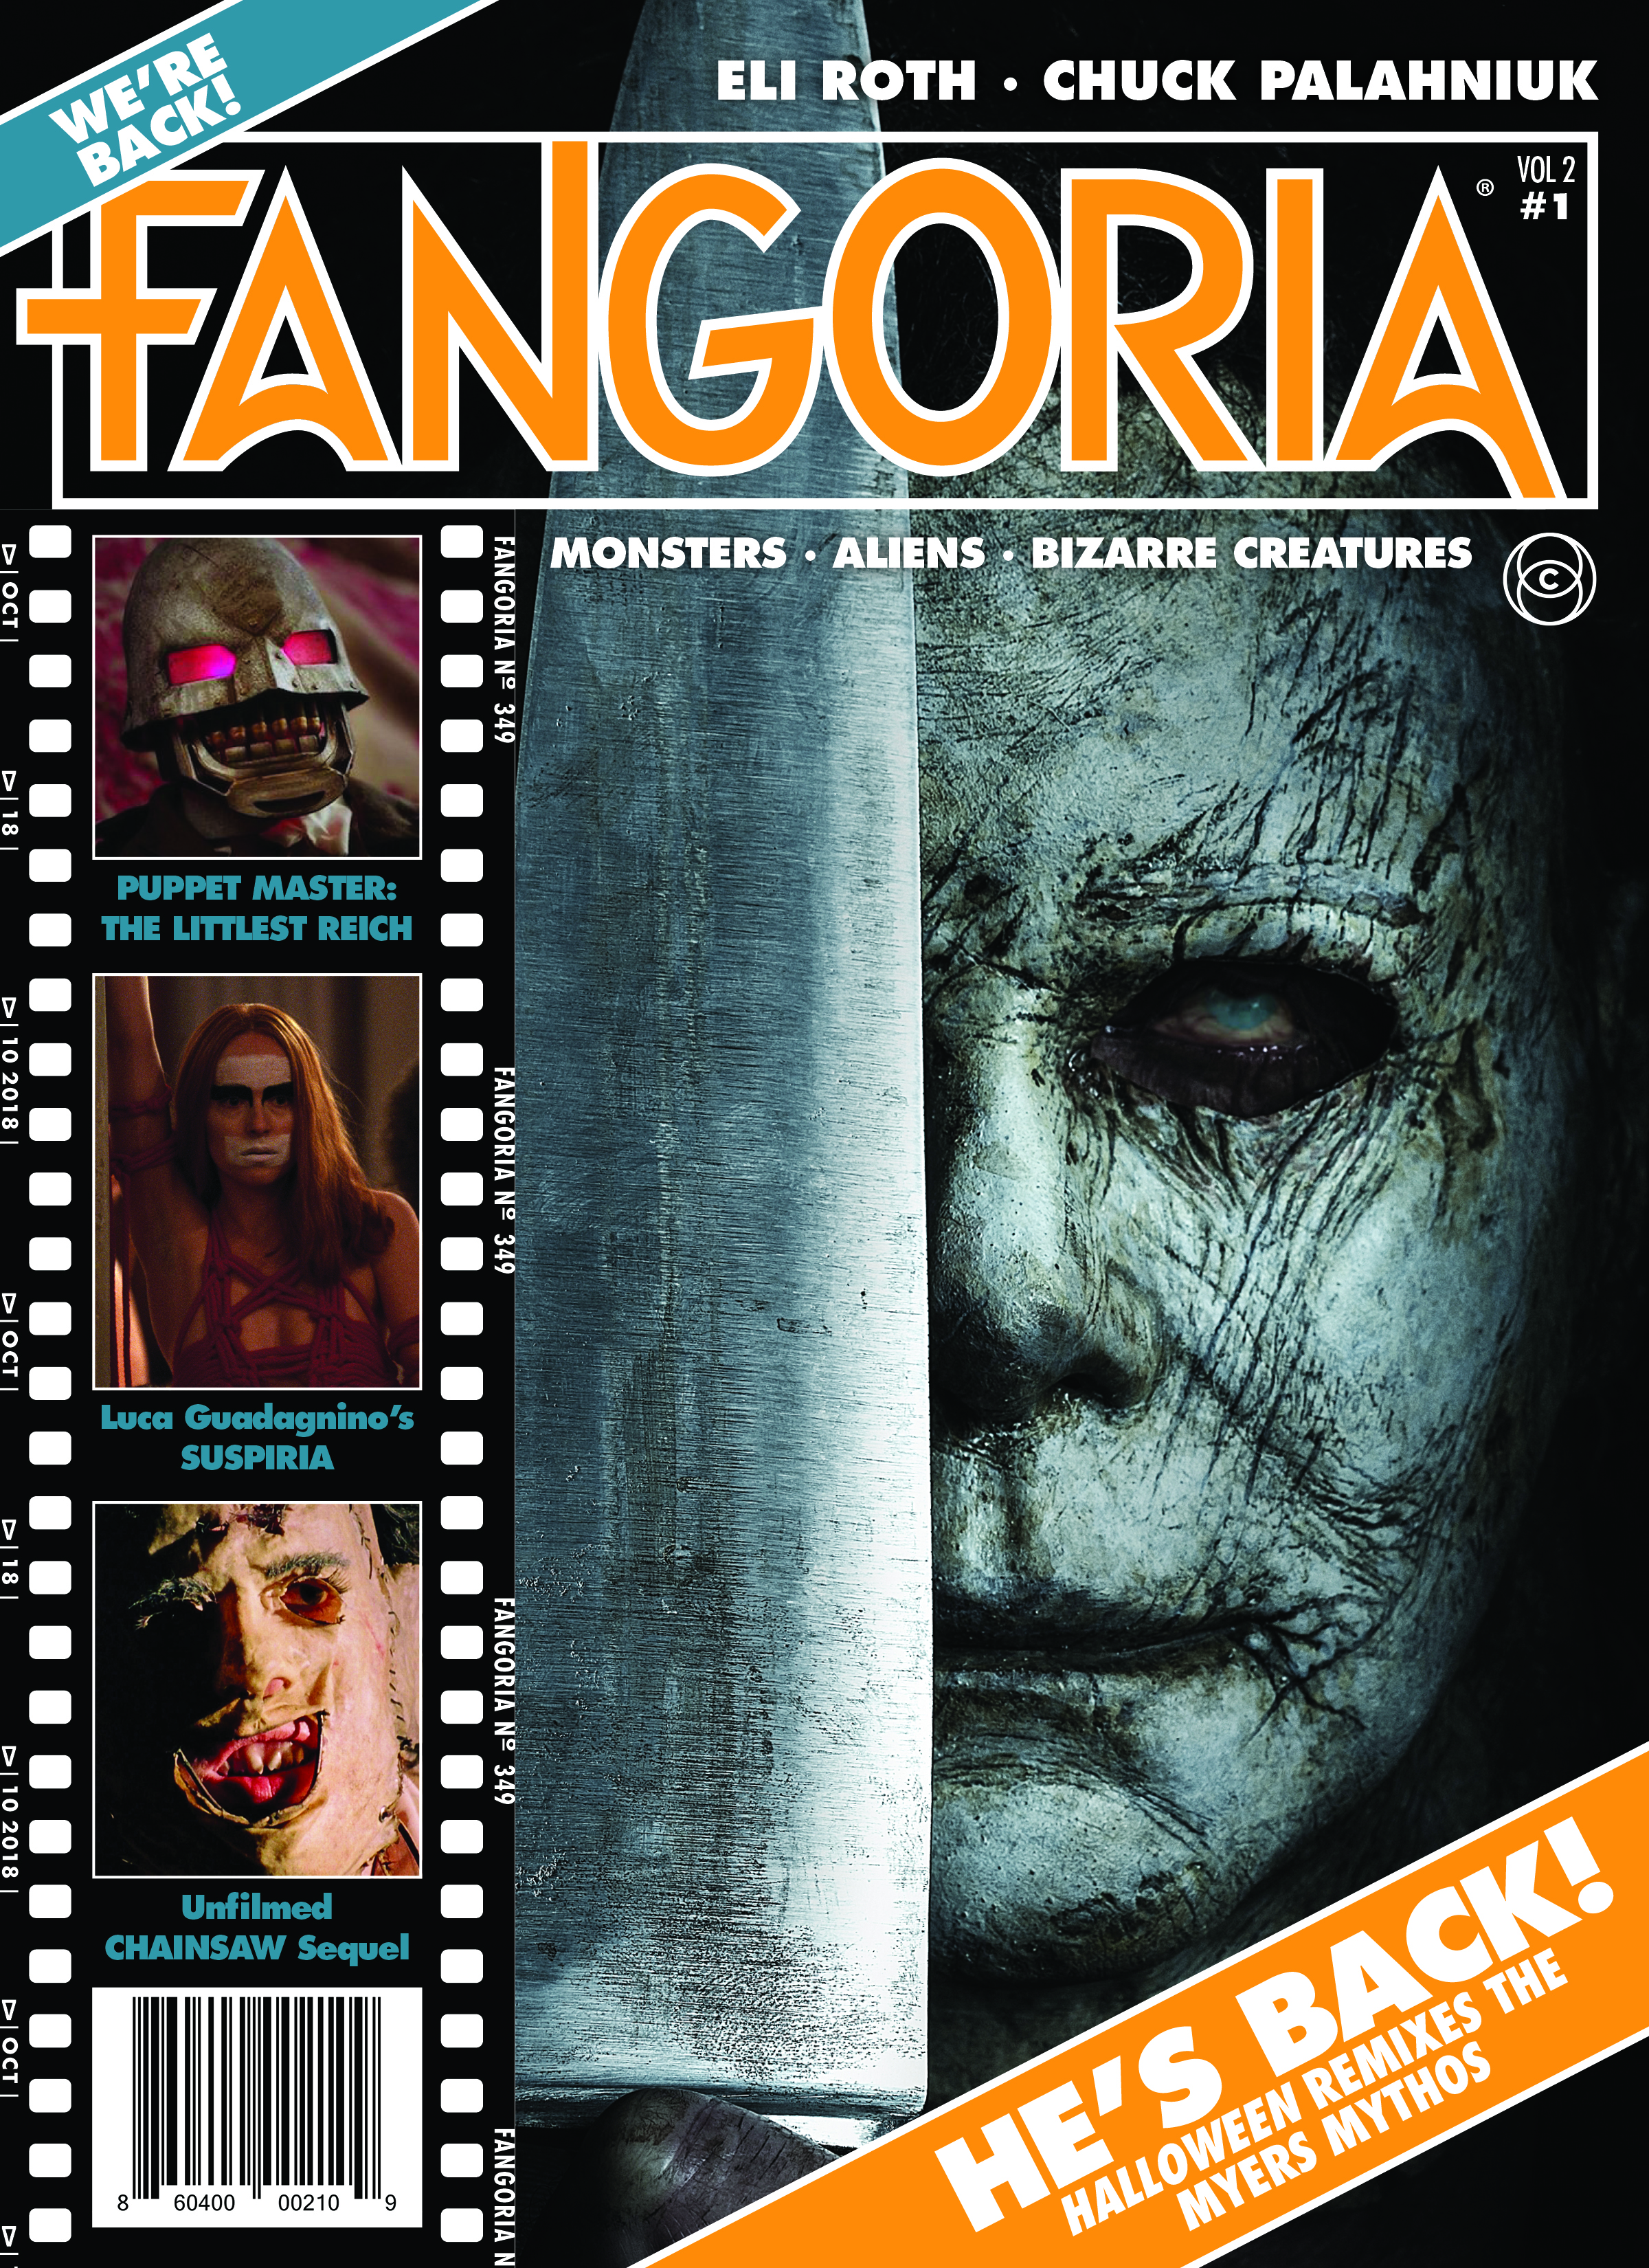 Fangoria, the fabled horror magazine, has risen from the